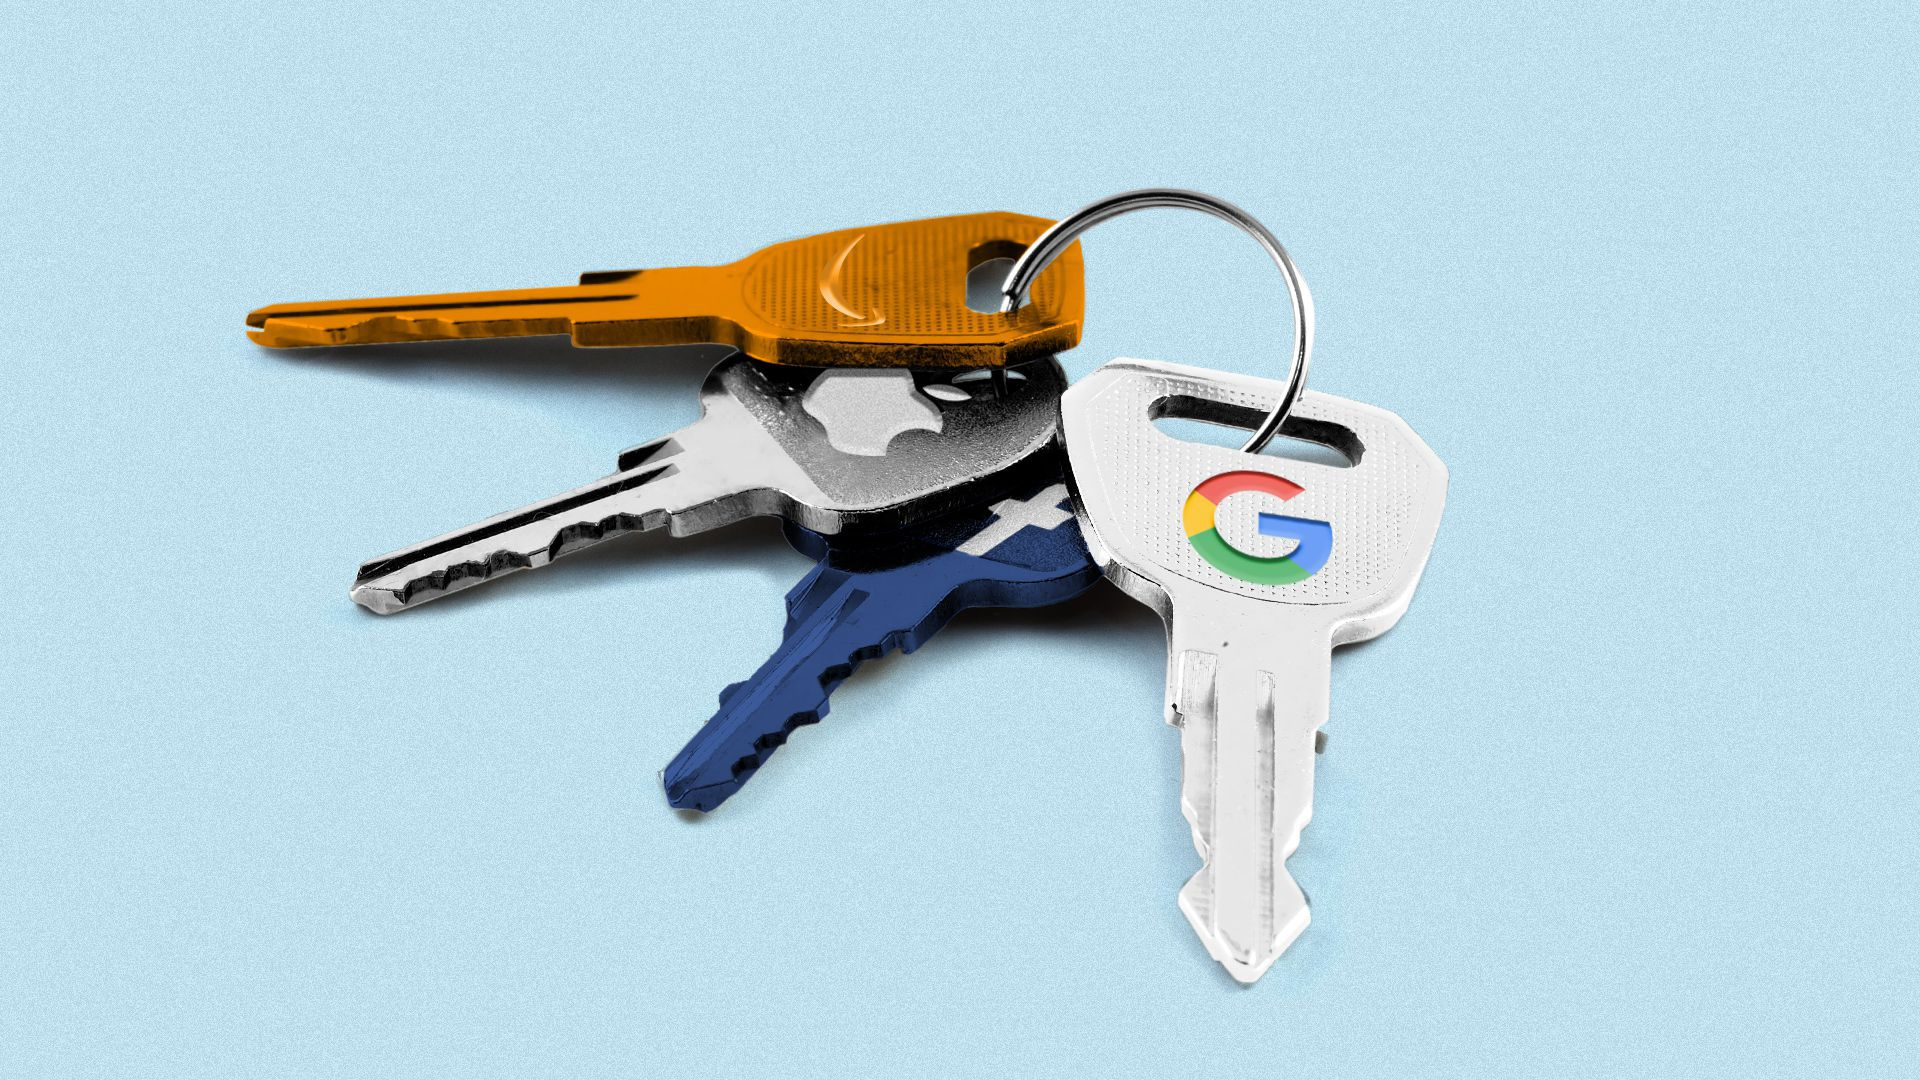 Illustration of keys with the logos of Apple, Facebook, Google and Amazon